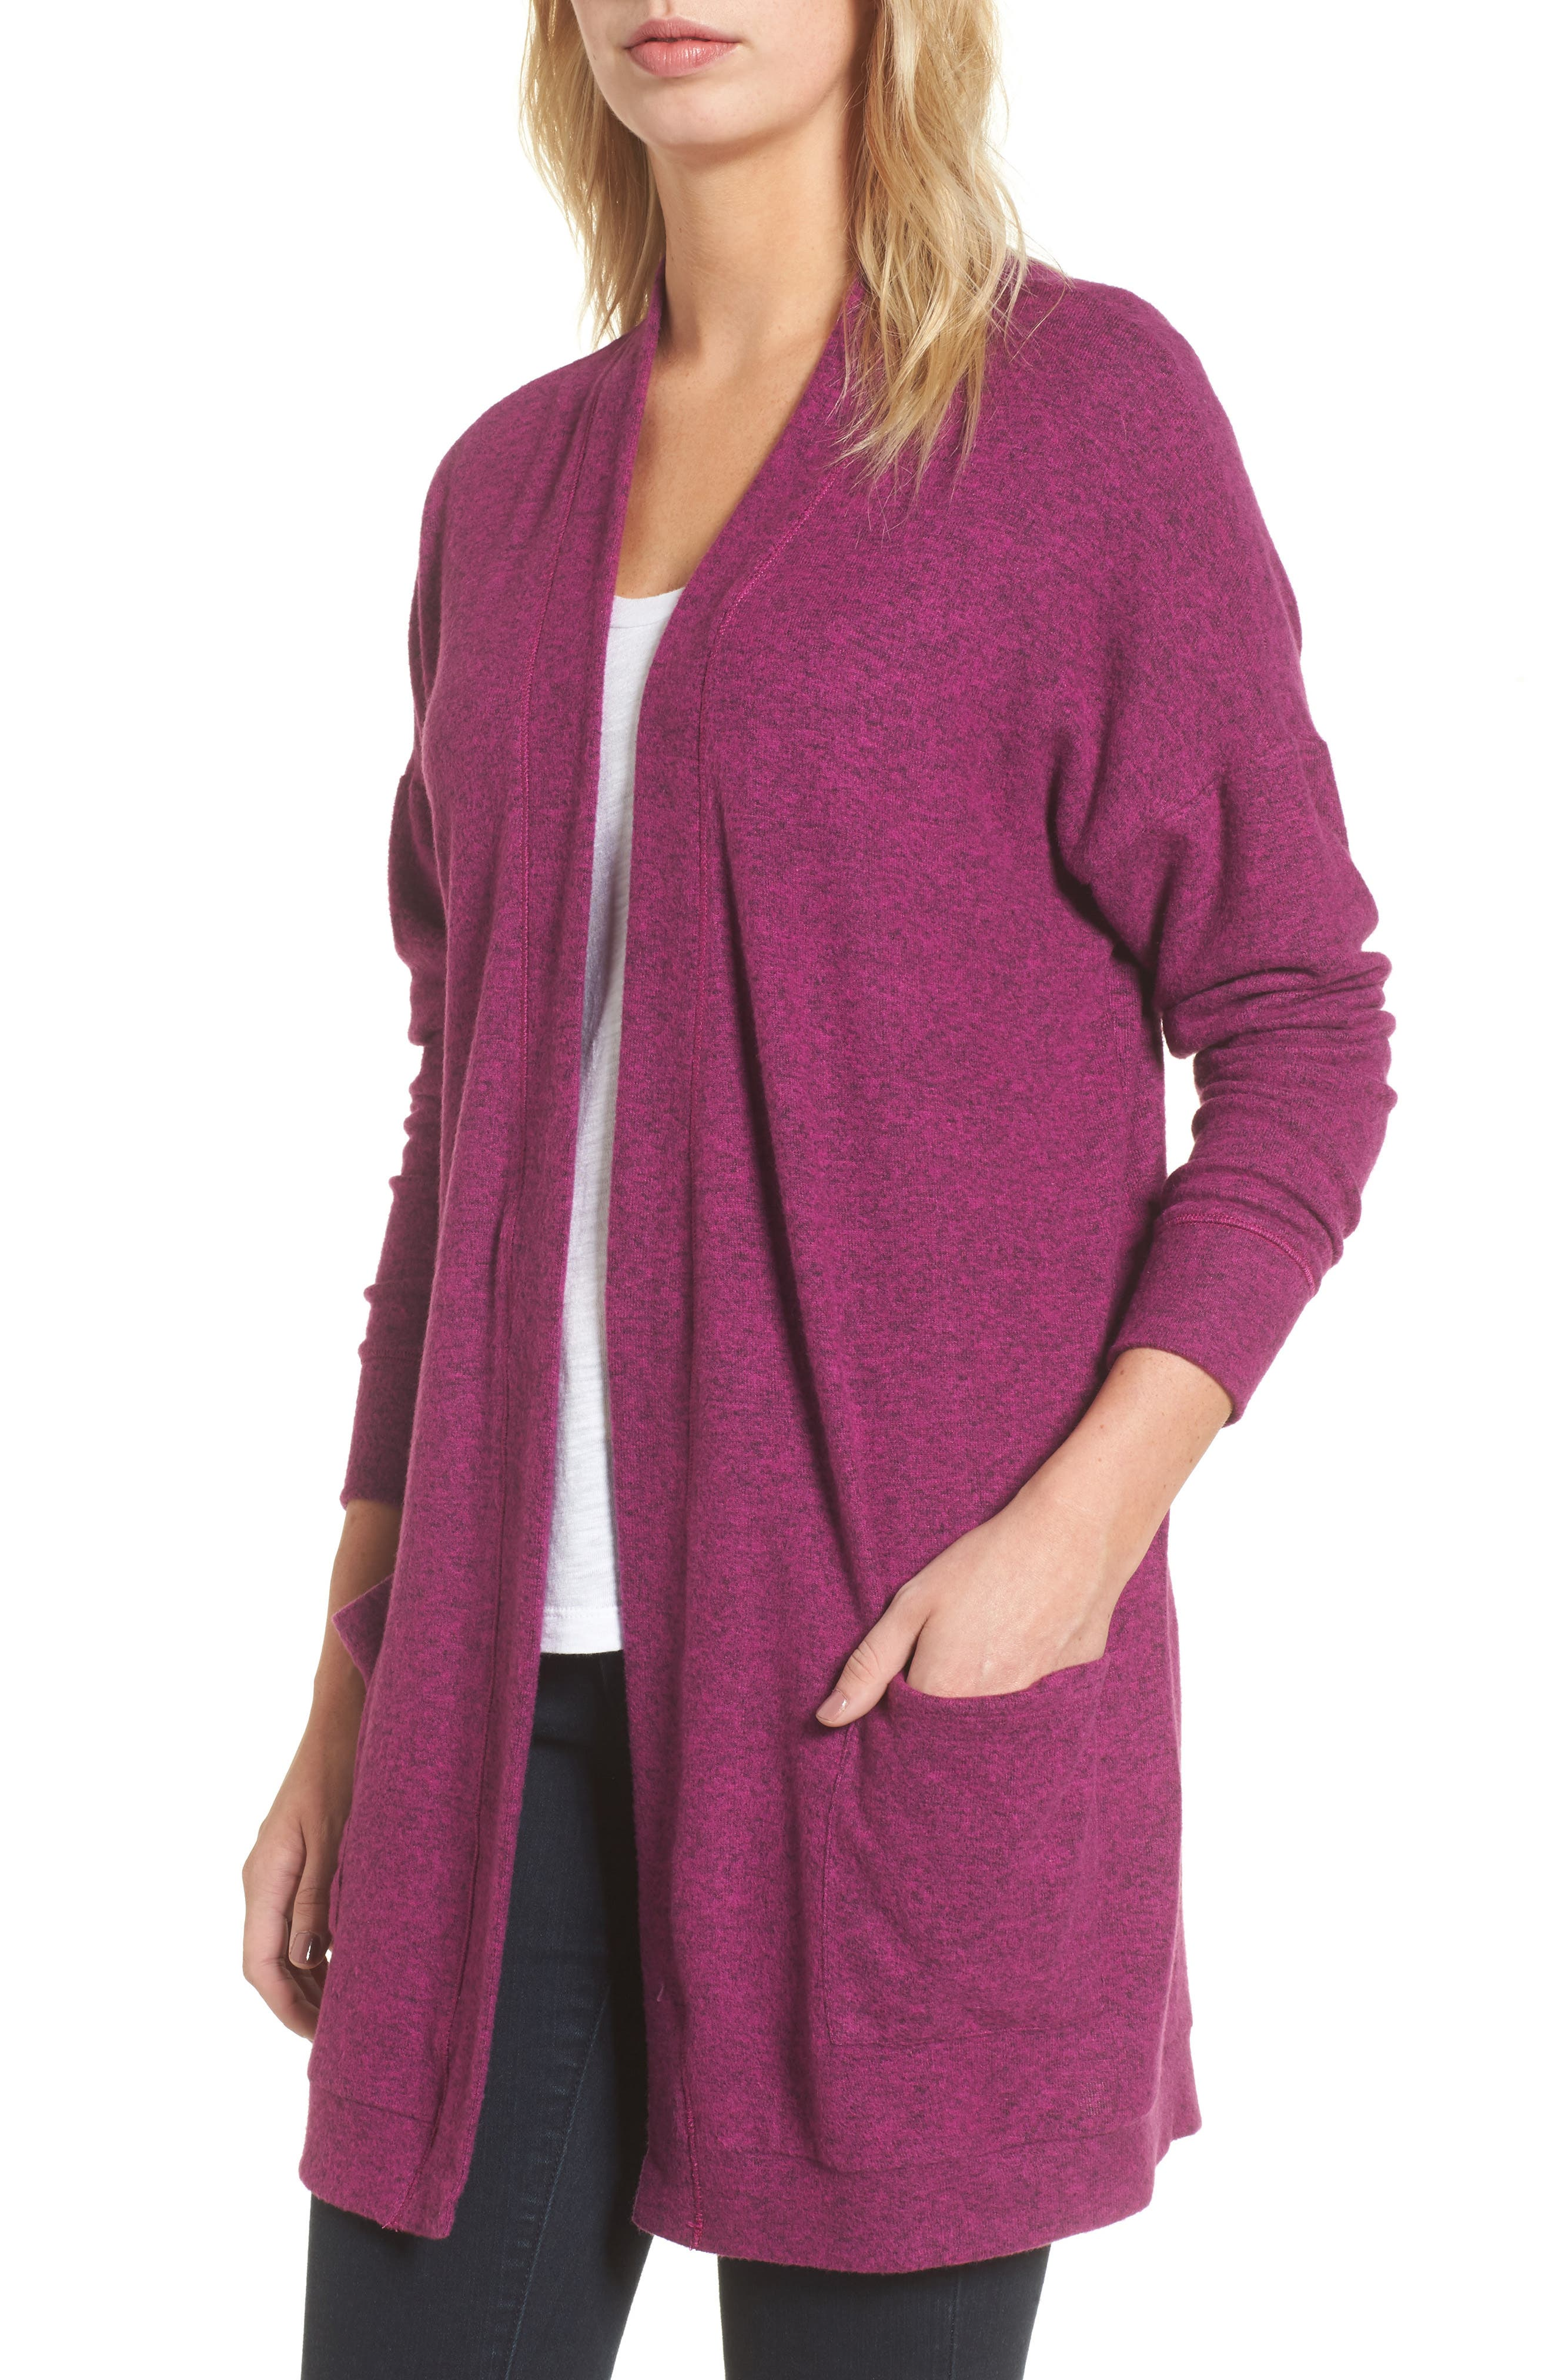 Gibson Cozy Fleece Cardigan (Regular & Petite)